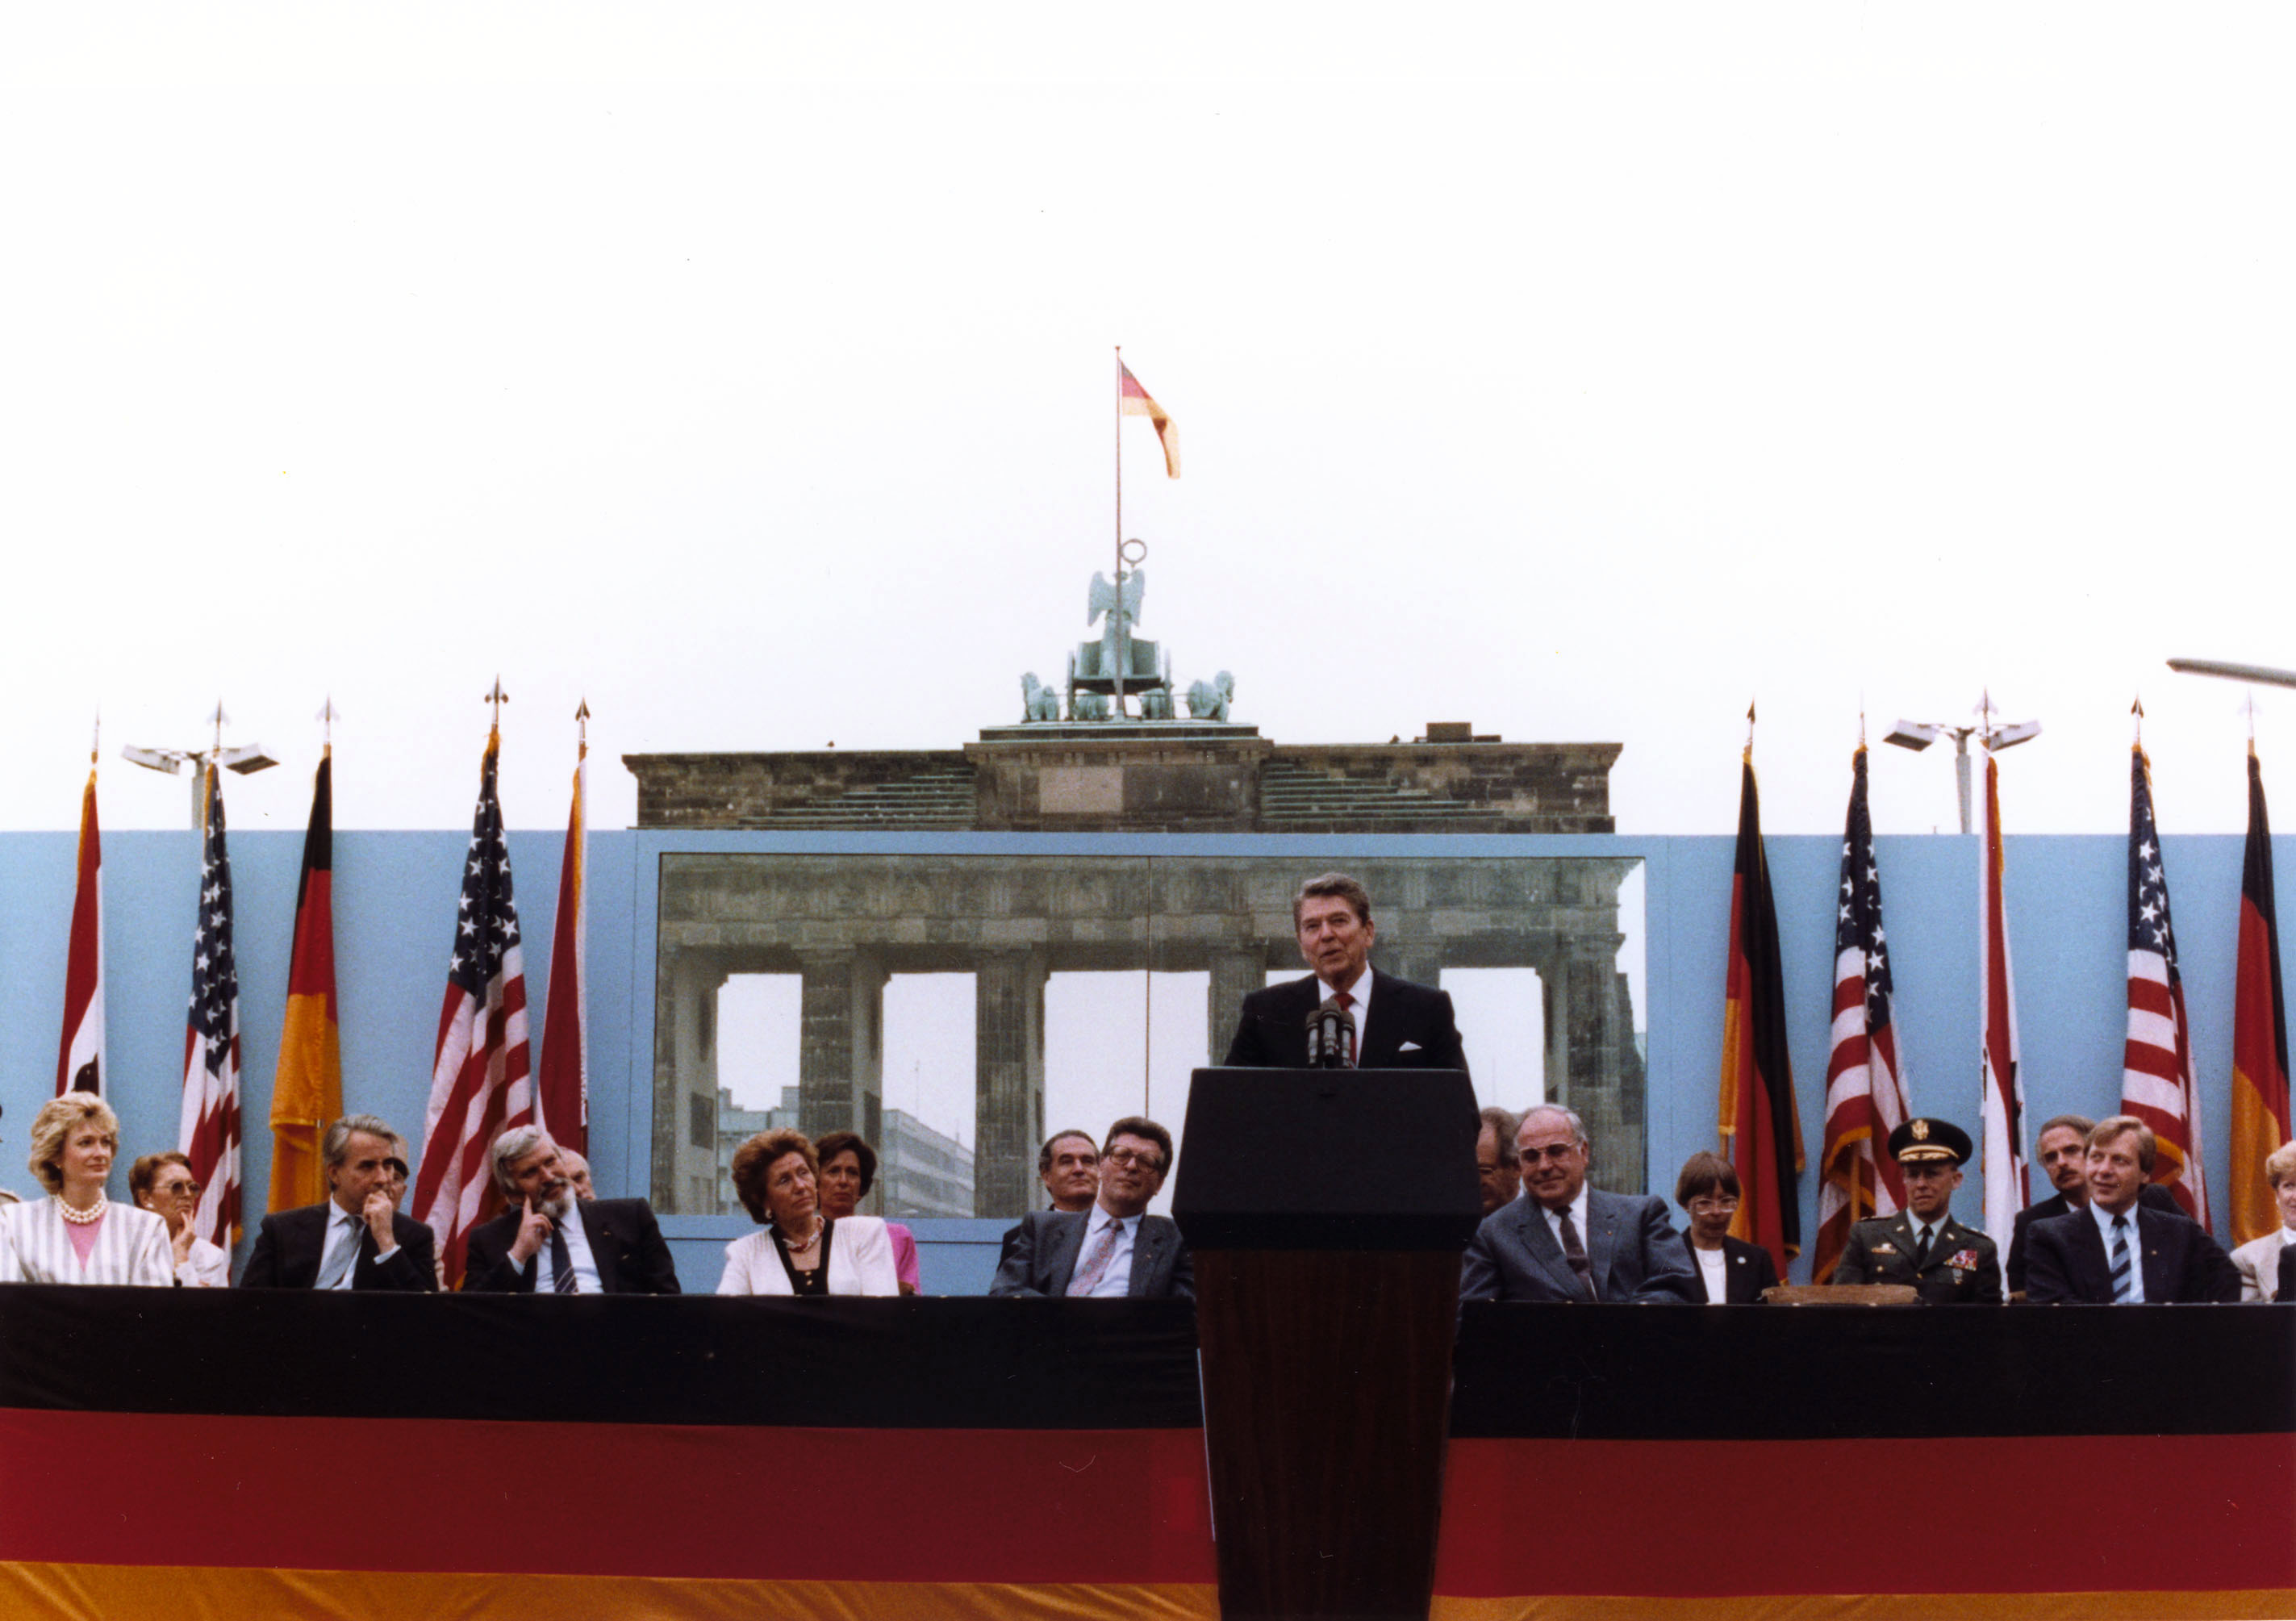 U.S. President Ronald Reagan giving a speech at Berlin's Brandenburg Gate on June 12, 1987, in which he challenges Soviet General Secretary Mikhail Gorbachev to